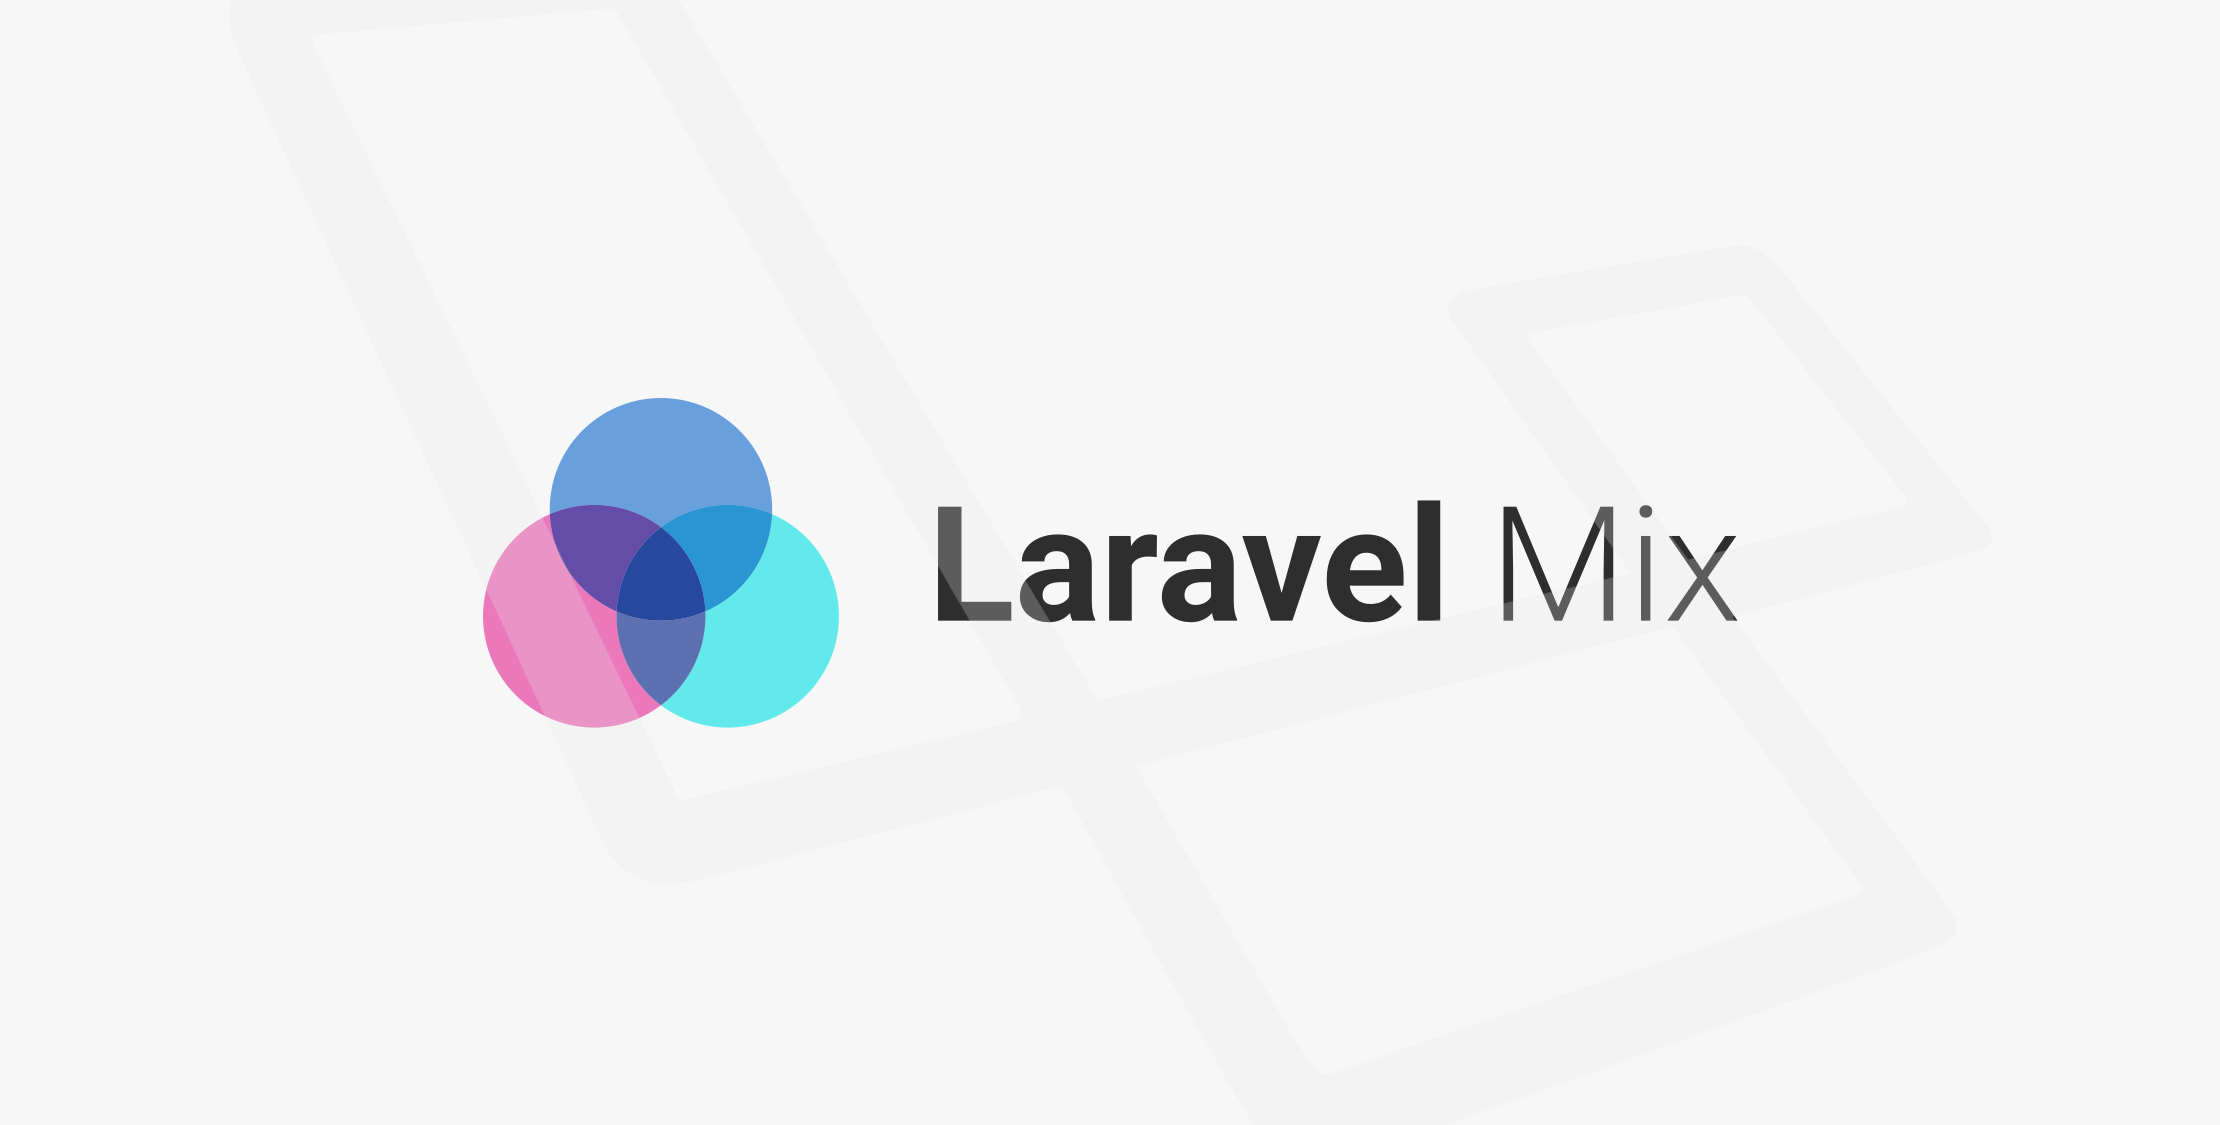 laravel-mix.png